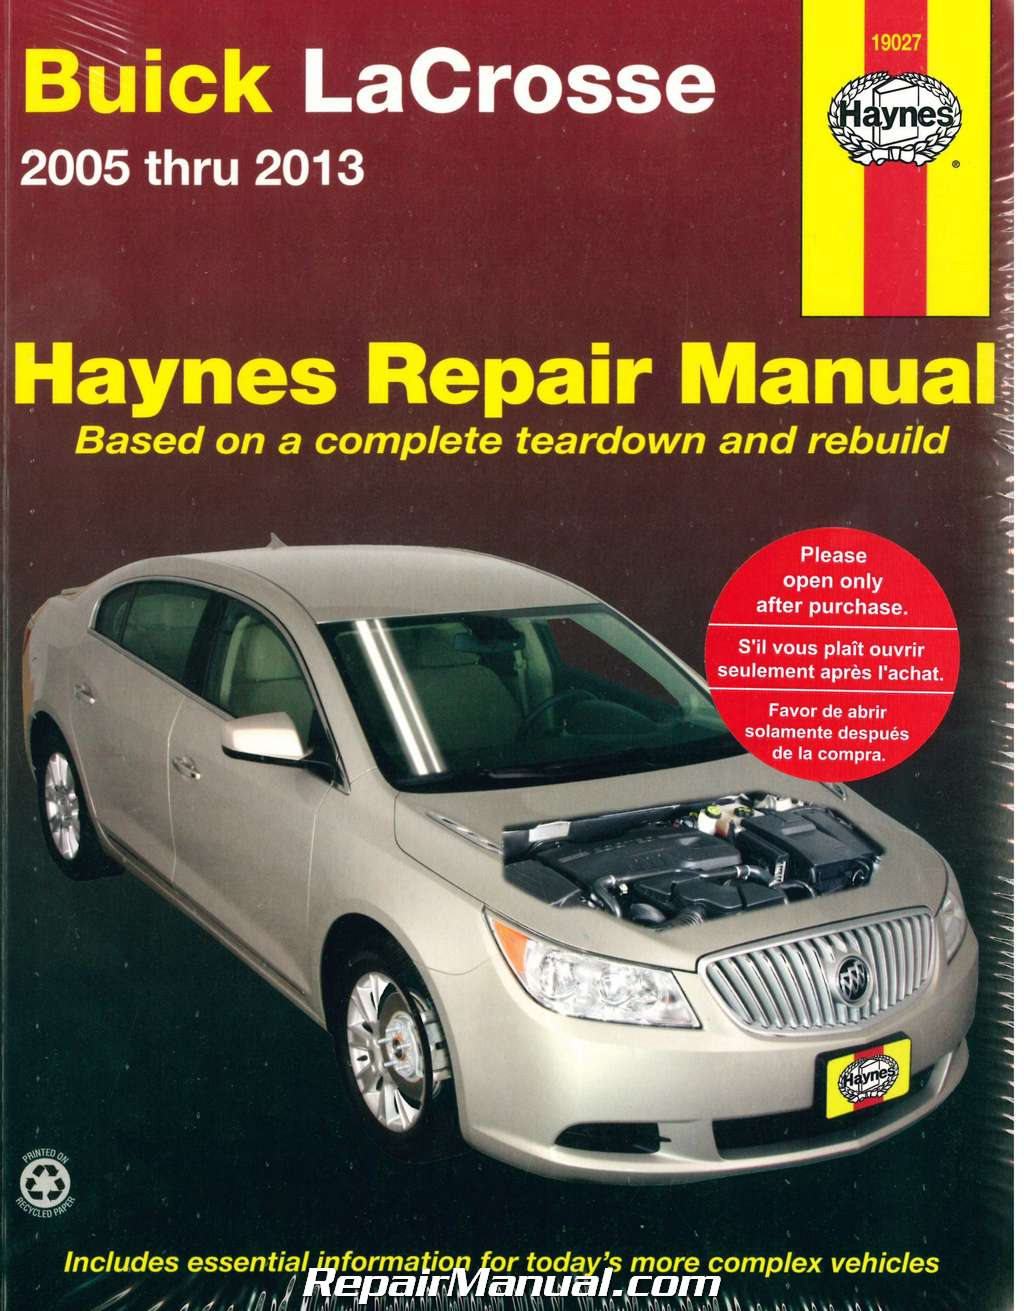 2005 buick lacrosse repair manual open source user manual u2022 rh dramatic varieties com 2008 buick lacrosse service manual 2006 buick lacrosse service manual